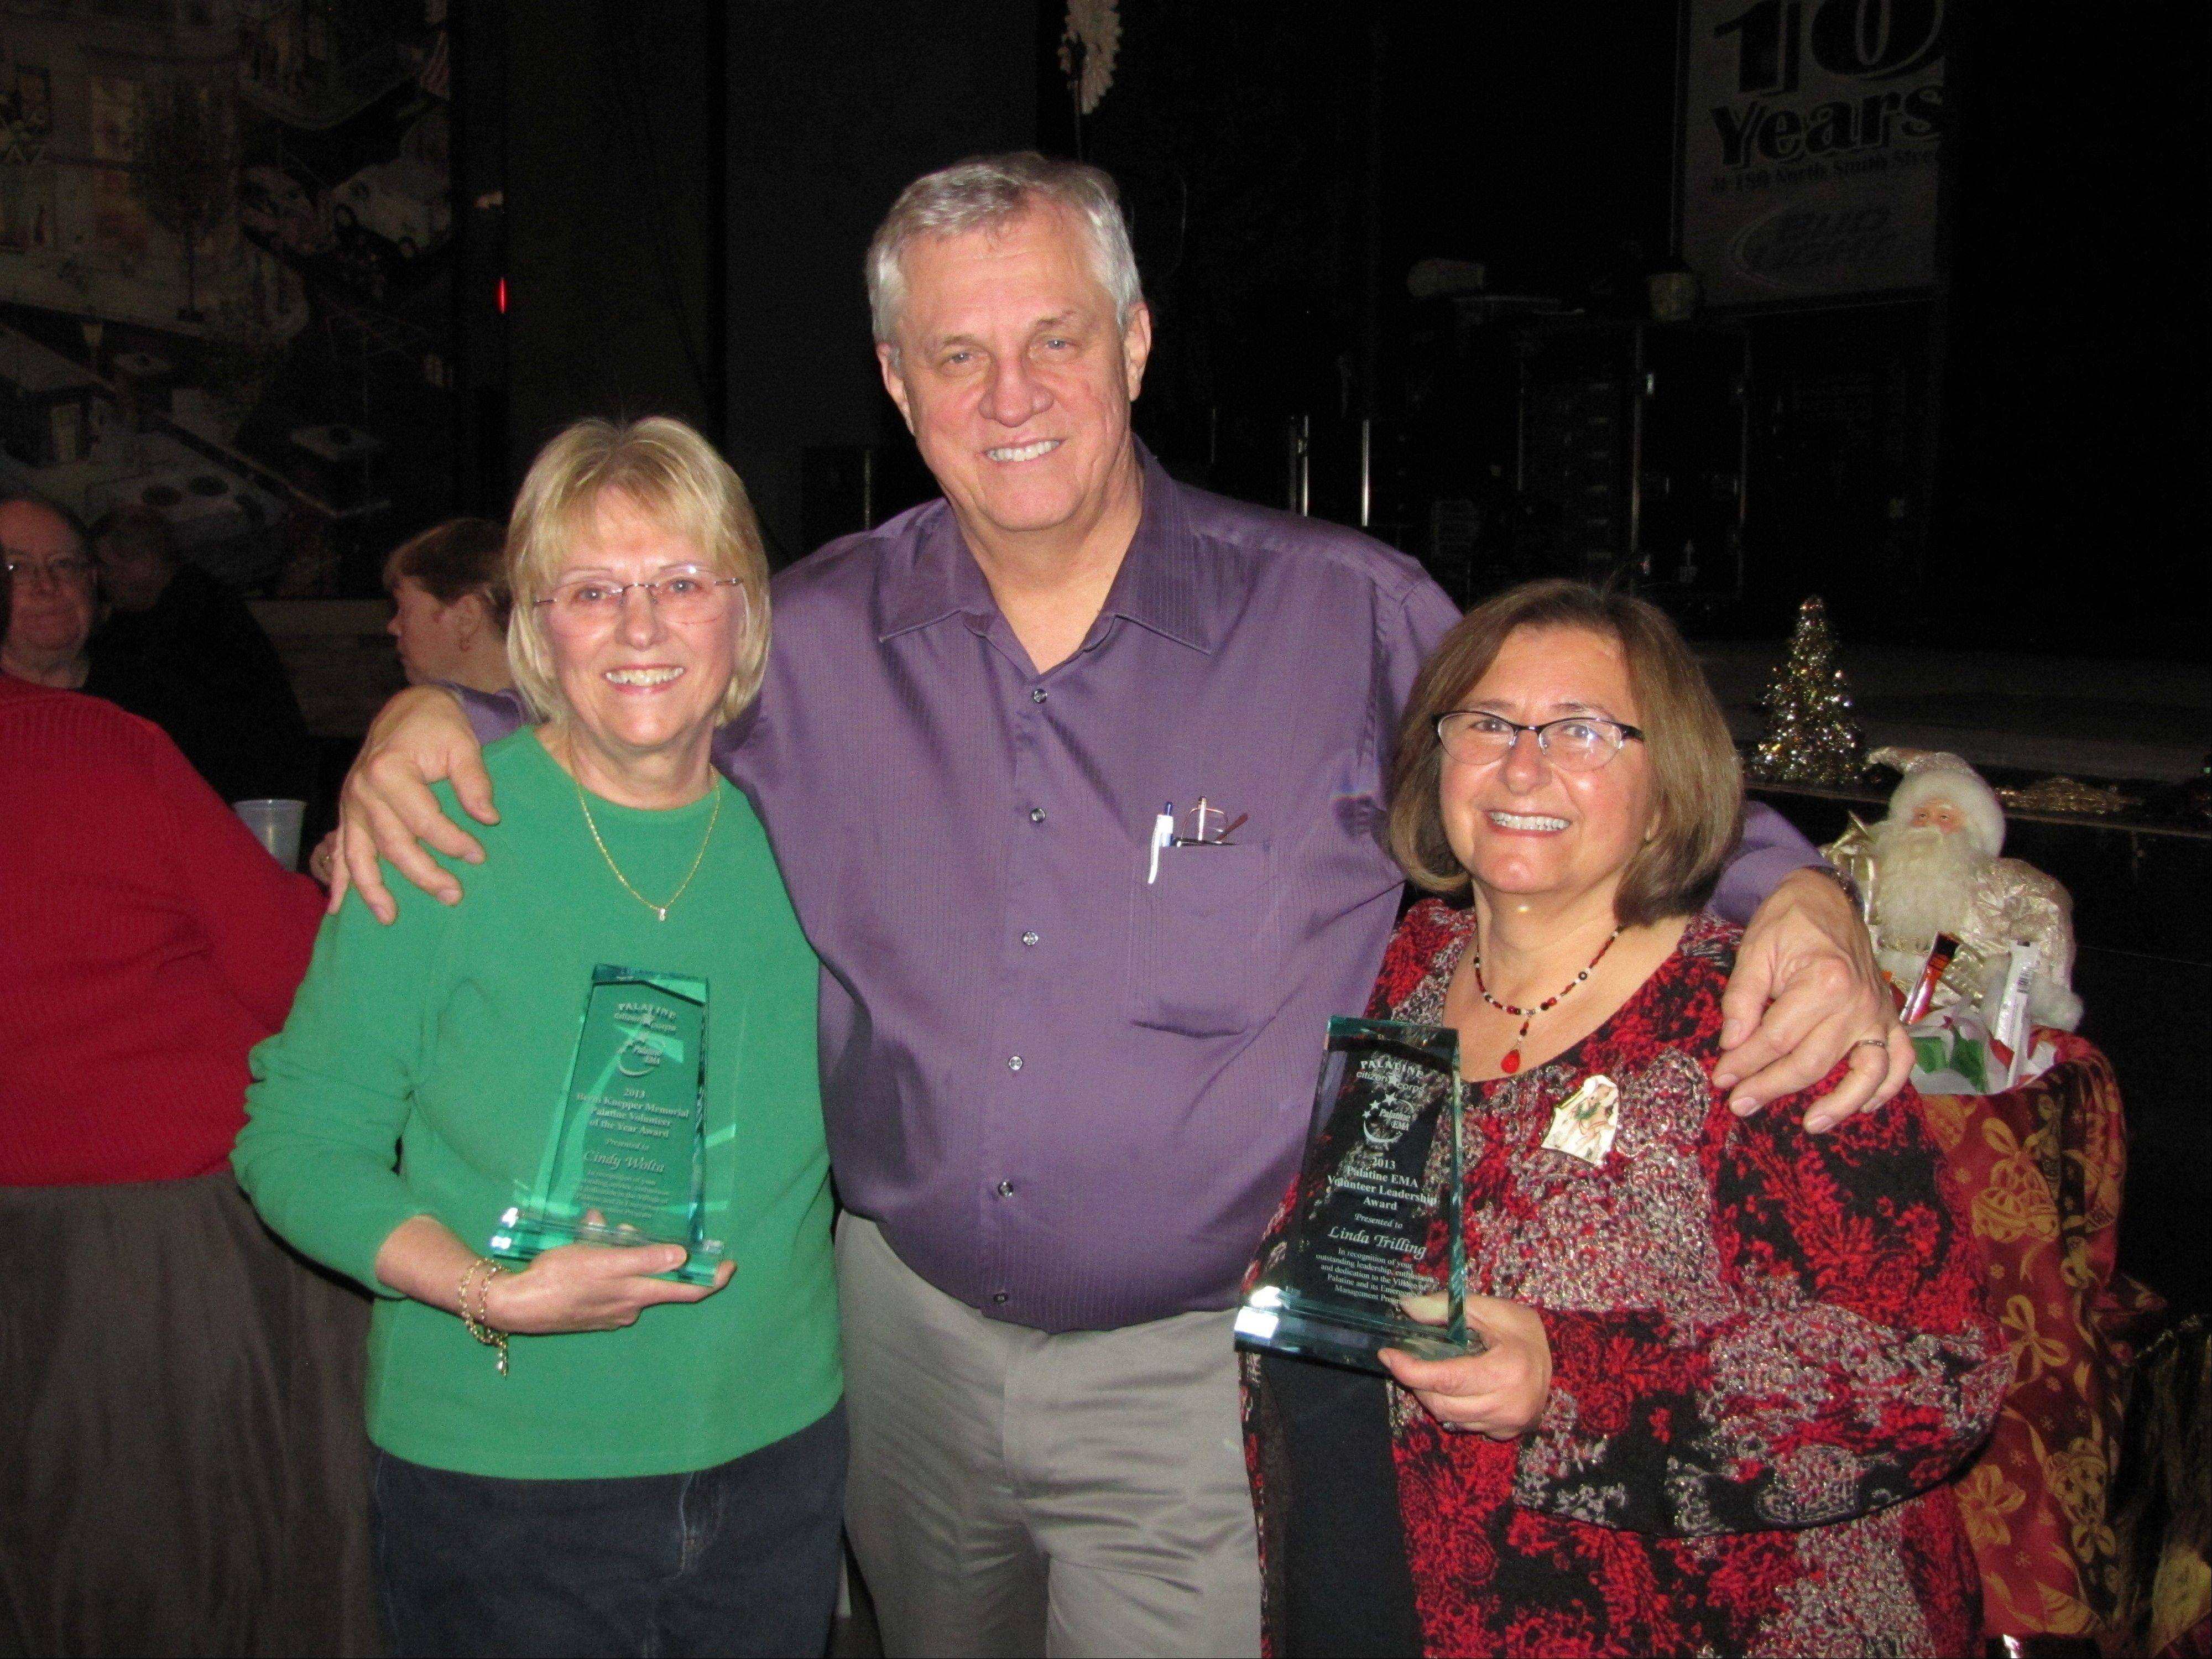 Cindy Wolta, left, is Palatine Emergency Management Agency Volunteer of the Year. Tom Smith, middle, agency coordinator, recognized Linda Trilling, right, disaster services coordinator from HandsOn Suburban Chicago, for her support for the Palatine program.